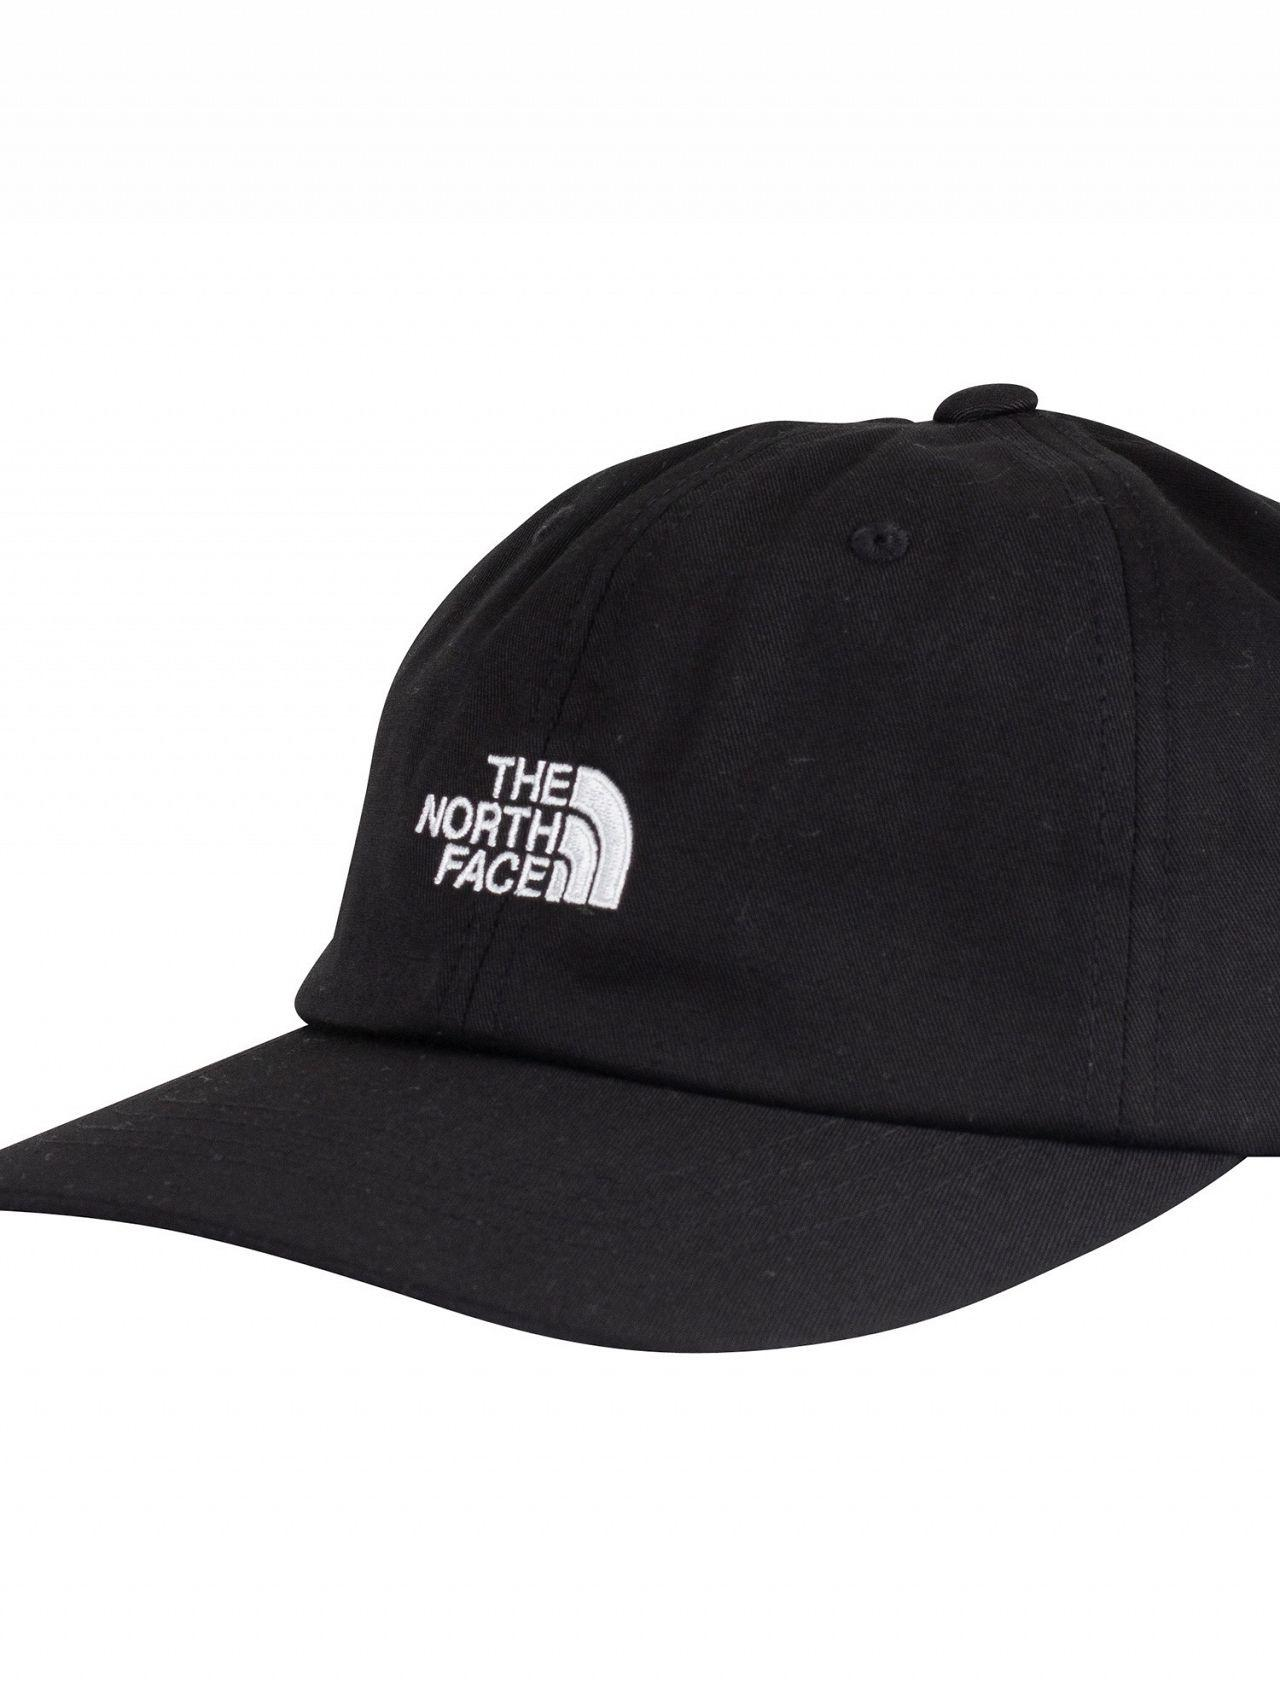 7a5bb6bb The North Face Logo Gore-tex Cap in Black for Men - Save 46% - Lyst